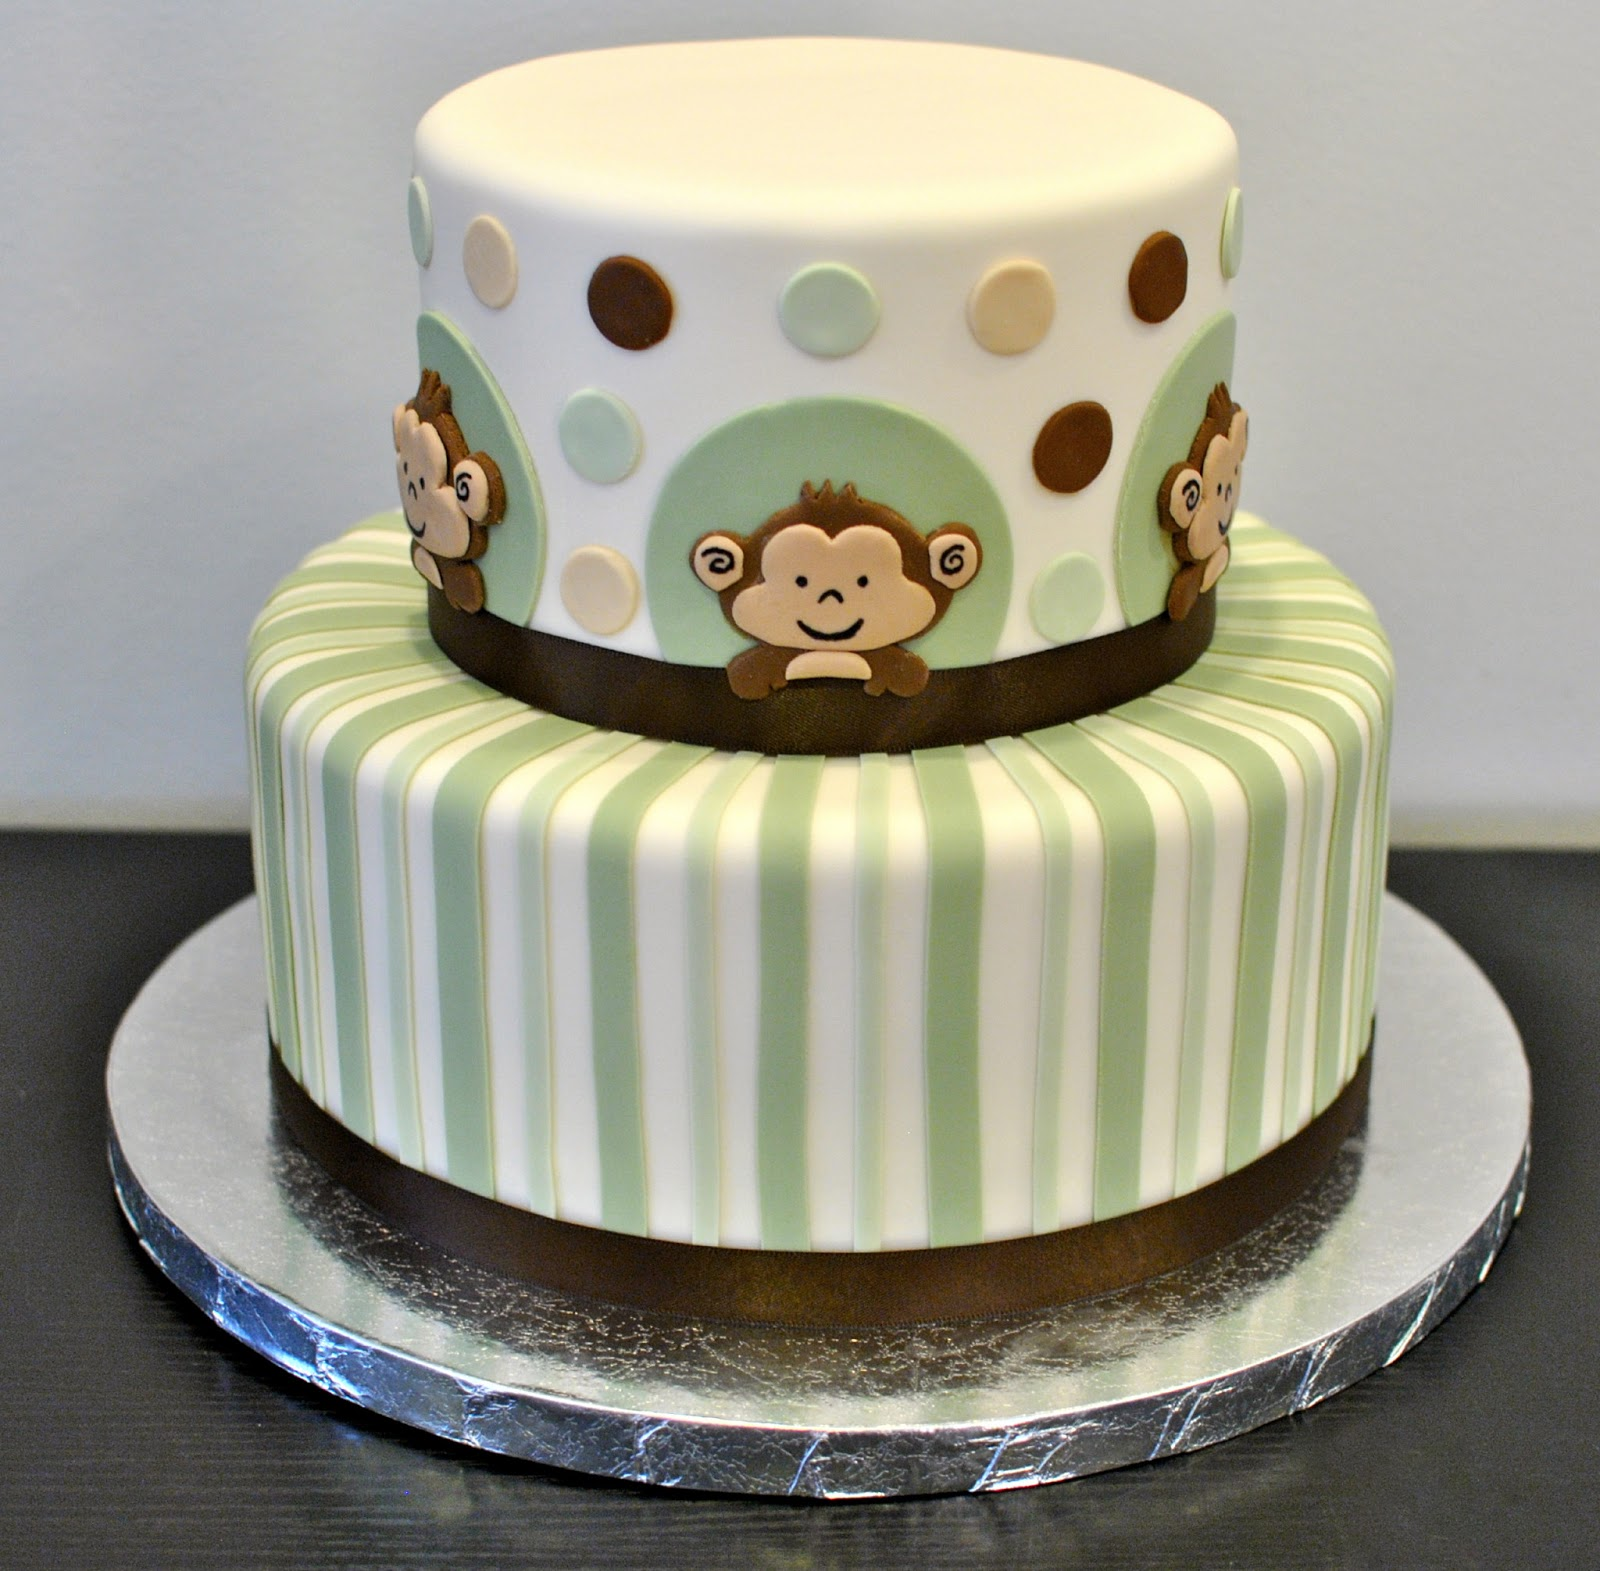 12 Photos of Cute Monkey Baby Shower Cakes